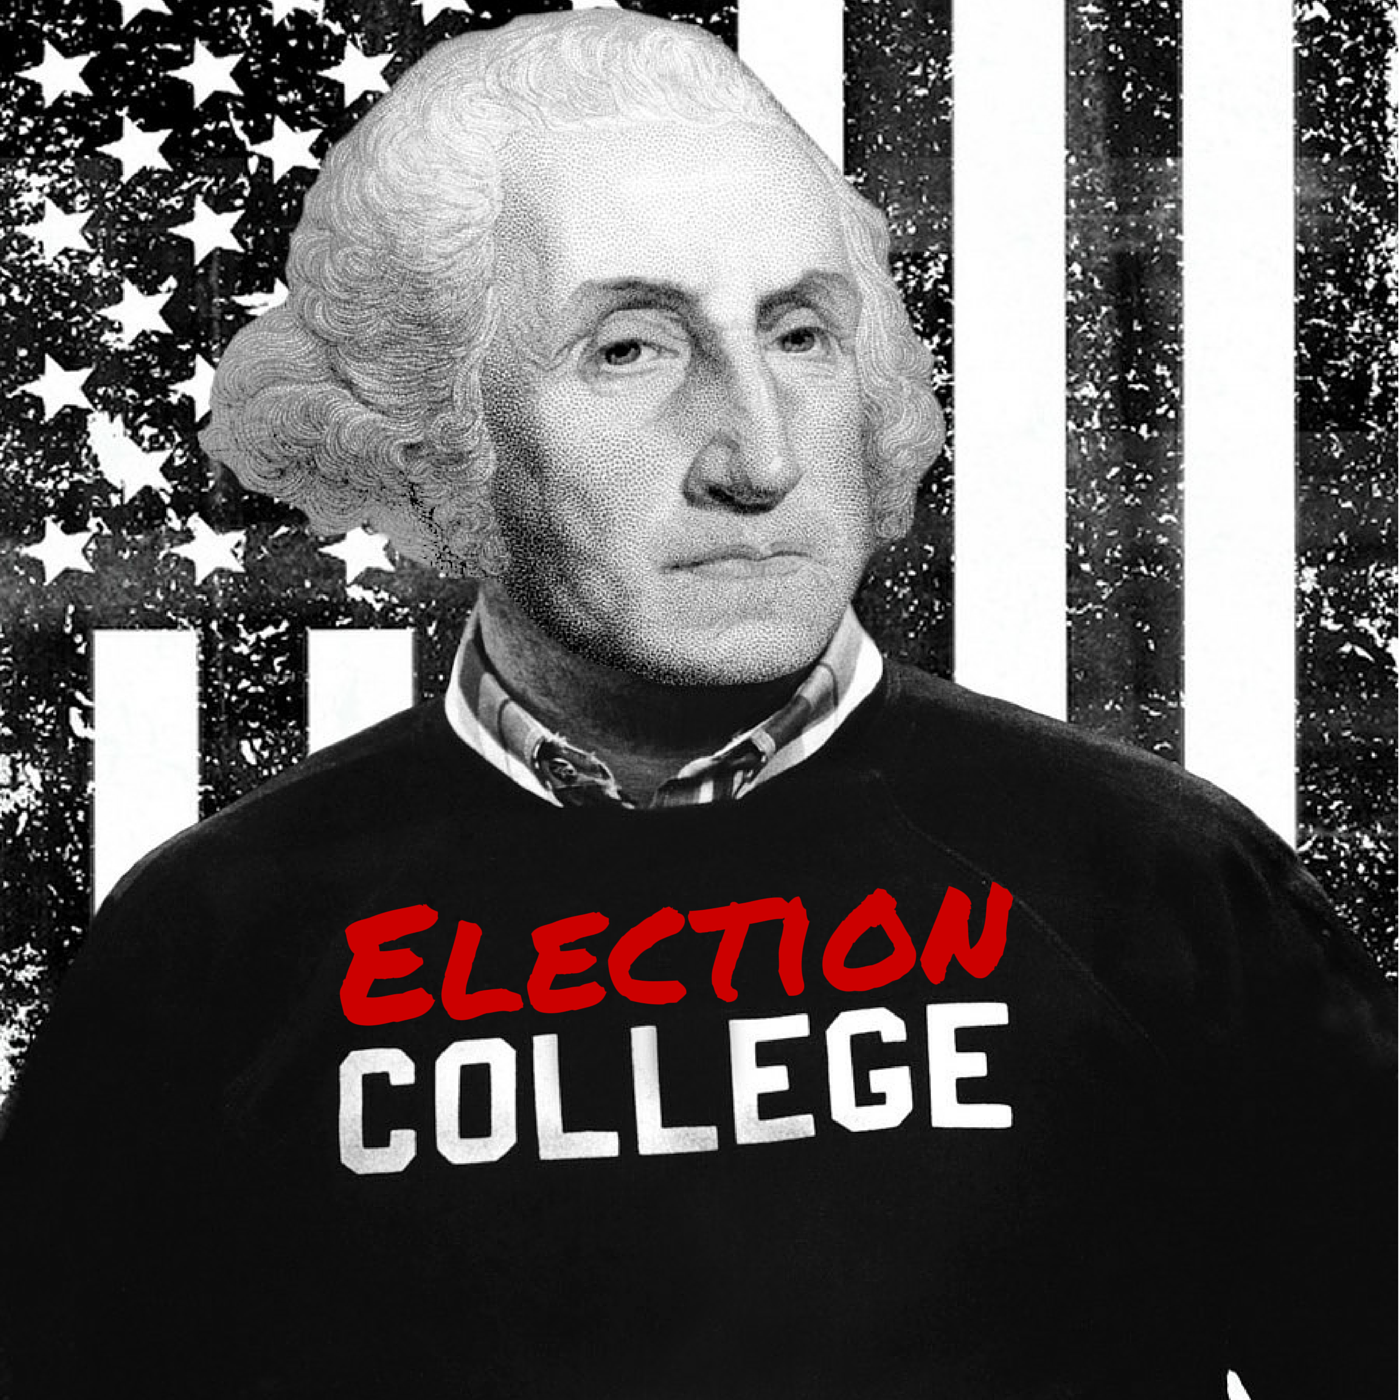 The 23rd Amendment | Episode #063 | Election College: United States Presidential Election History